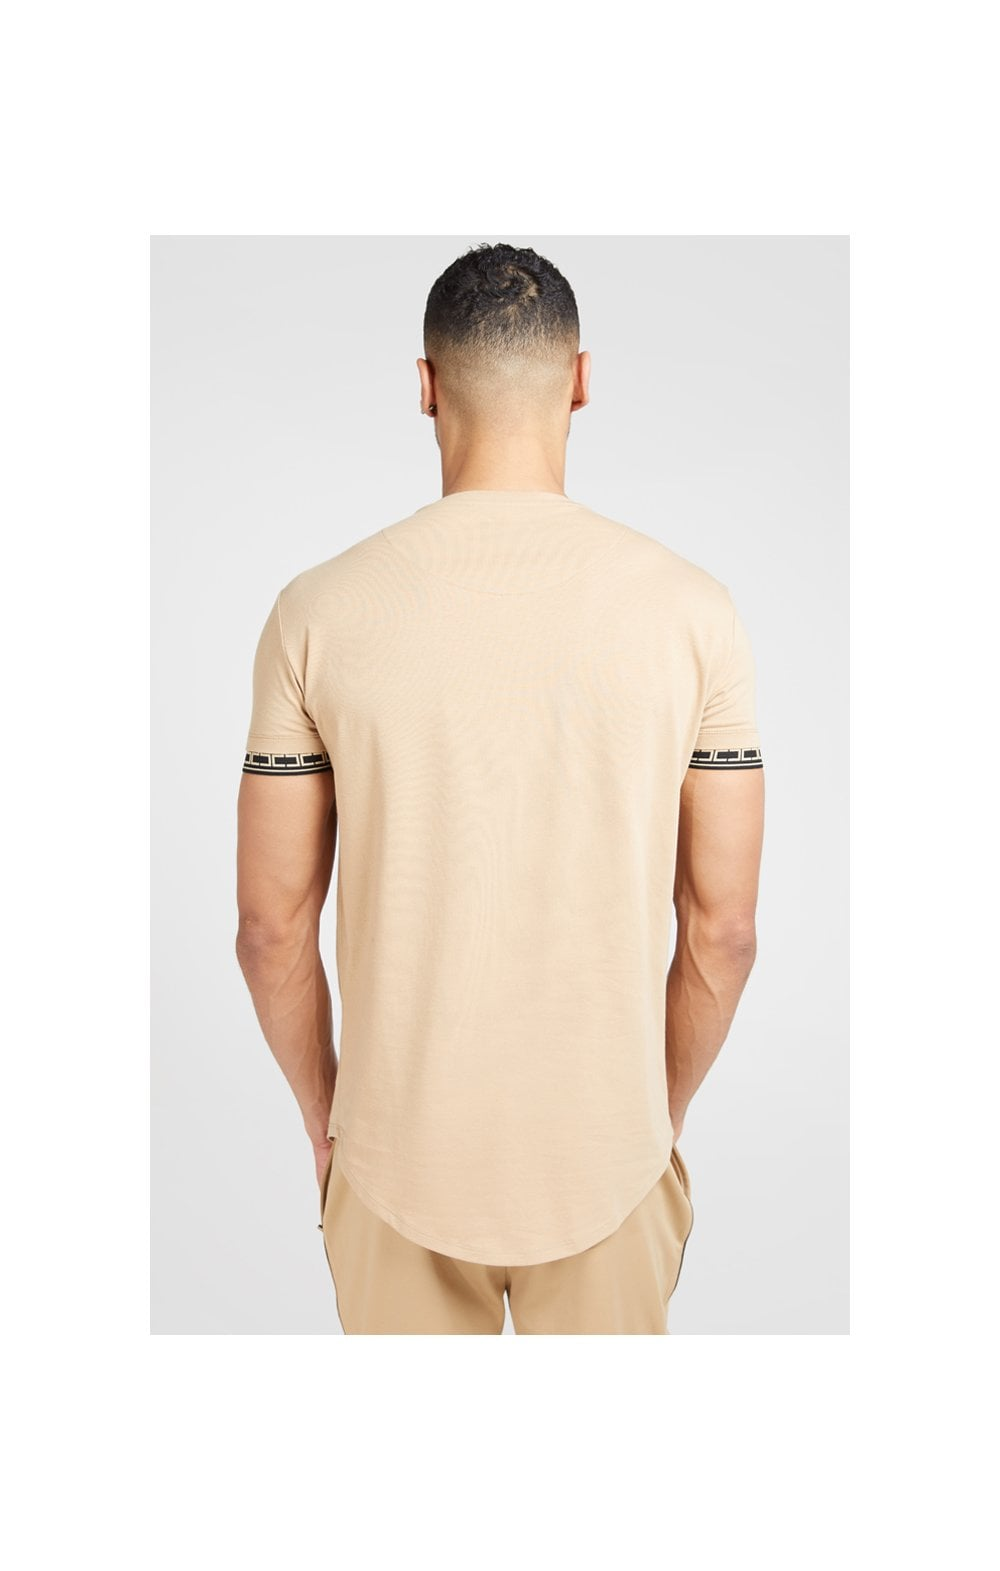 SikSilk S/S Scope Gym Tee – Beige (5)